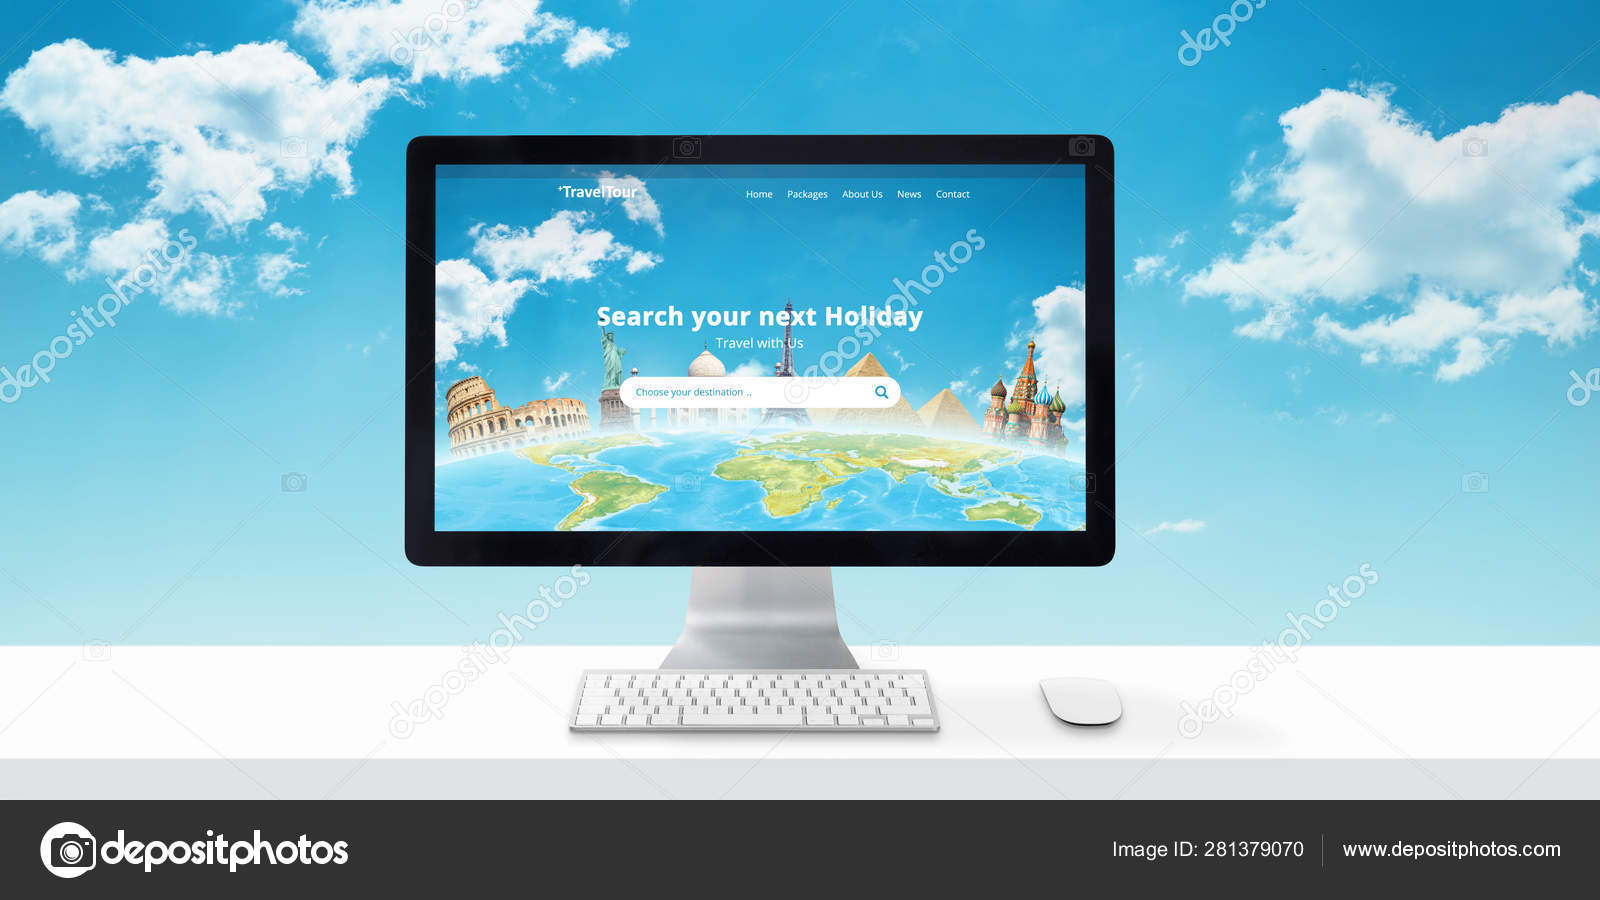 Travel Agency Website >> Travel Agency Website Concept Computer Display Search